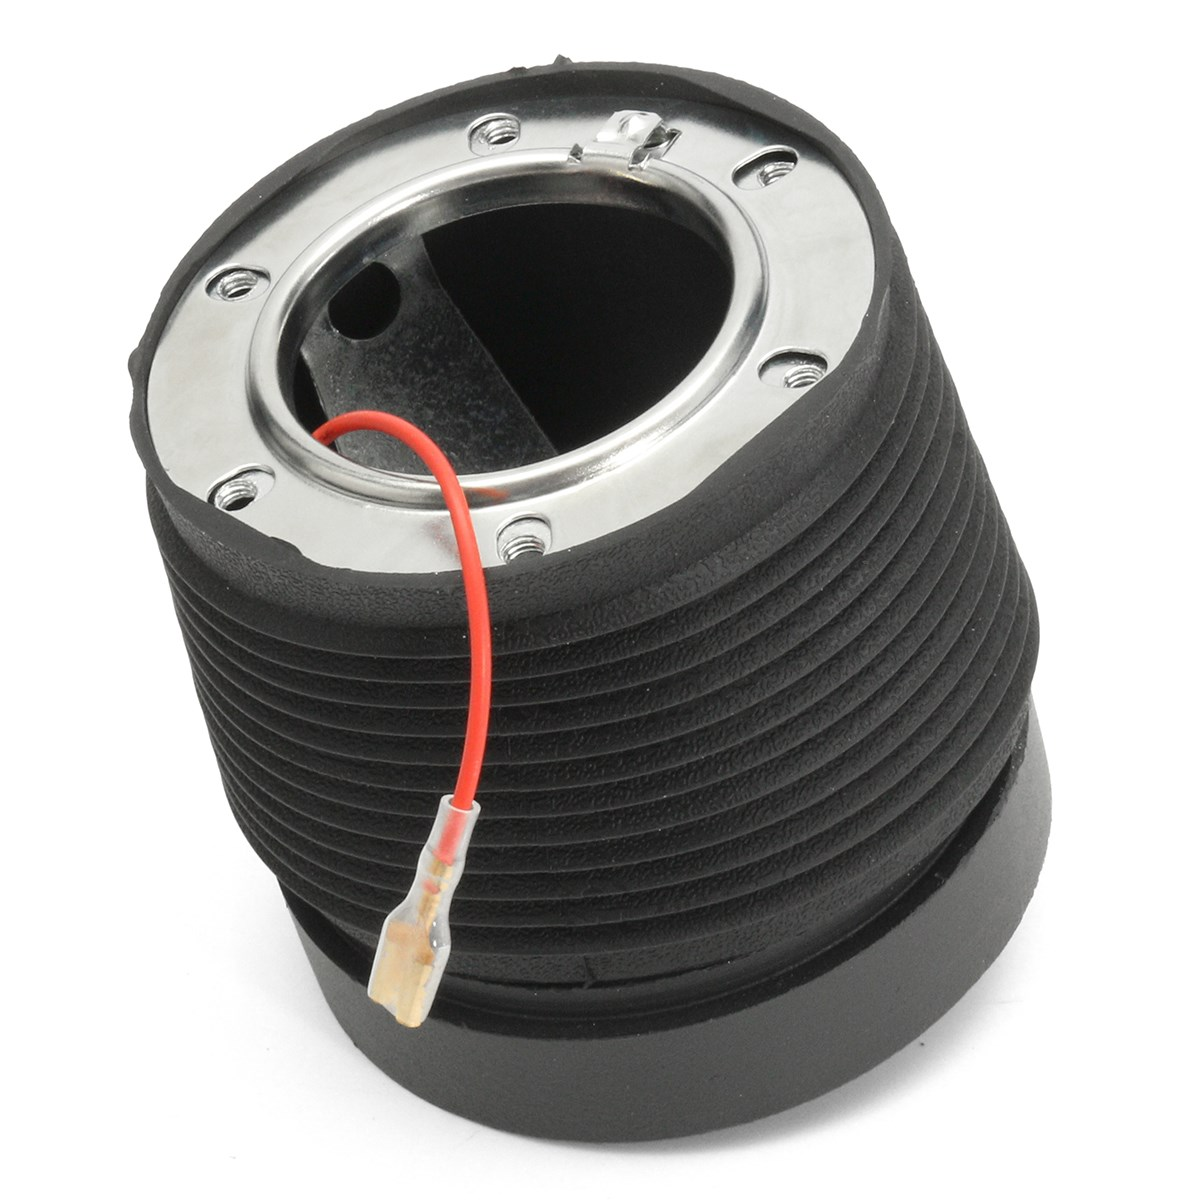 Hot 1 Set STEERING WHEEL BOSS HUB KIT FOR <font><b>VW</b></font> <font><b>GTI</b></font> <font><b>GOLF</b></font> MK1 MK2 <font><b>MK3</b></font> POLO PASSAT JETTA CORRAD image